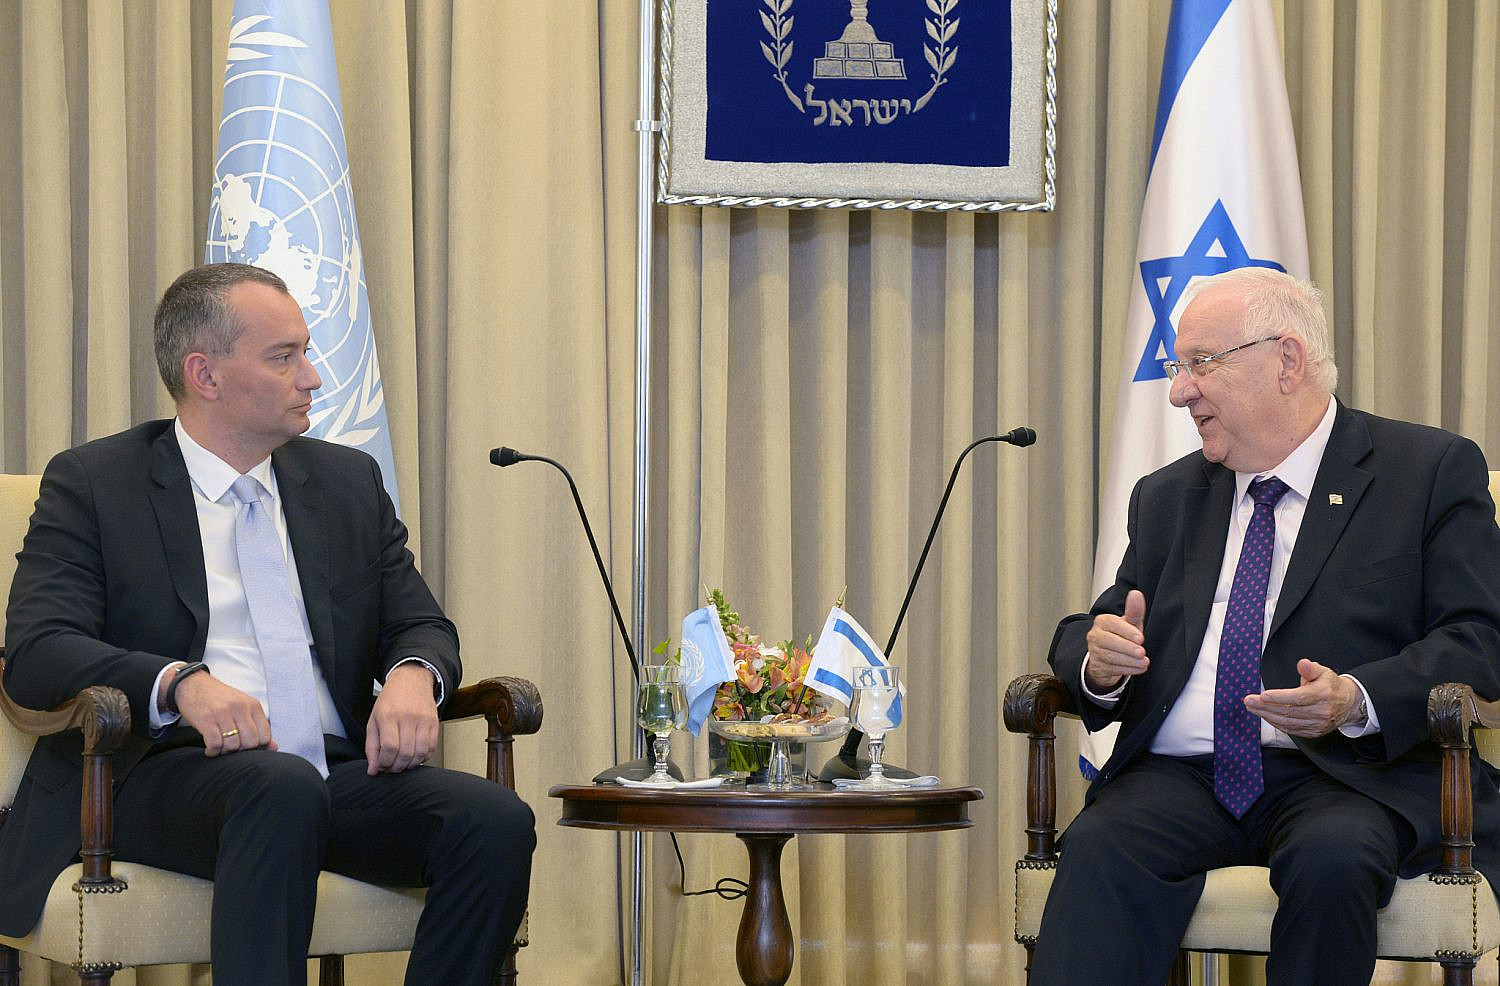 Israeli President Reuven Rivlin meets with the UN Special Coordinator for the Middle East Peace Process Nickolay Mladenov at the President's House in Jerusalem, June 3, 2015. (Mark Neyman/GPO)